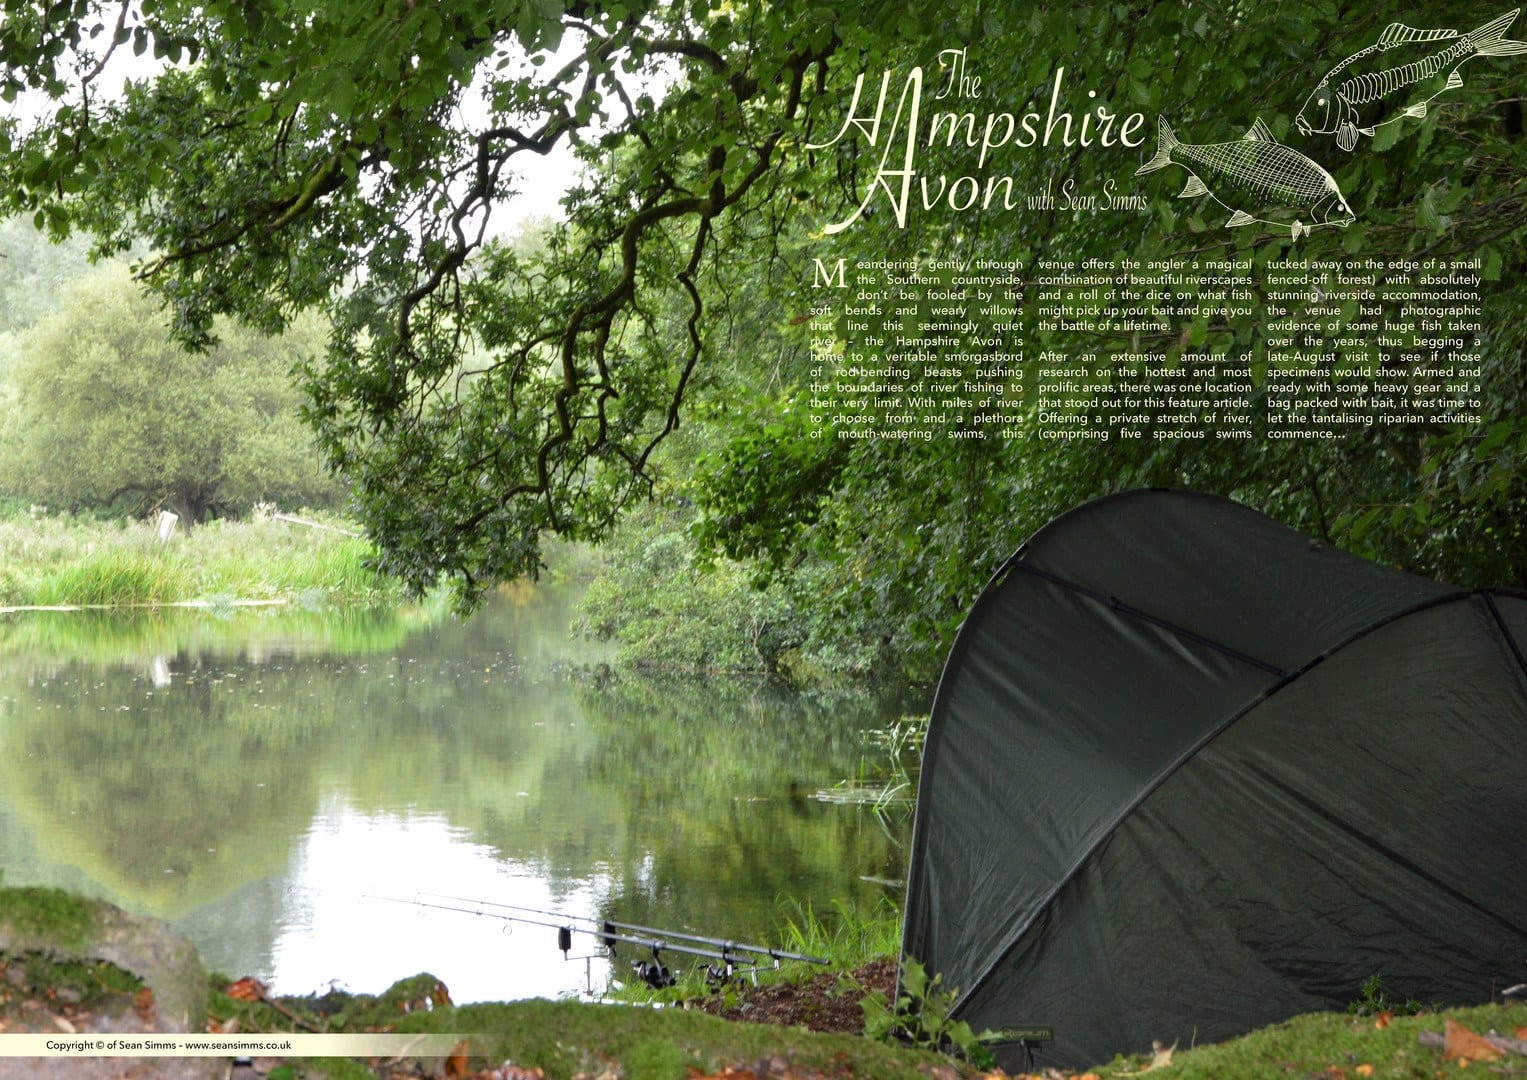 Article about the Hampshire Avon fishing